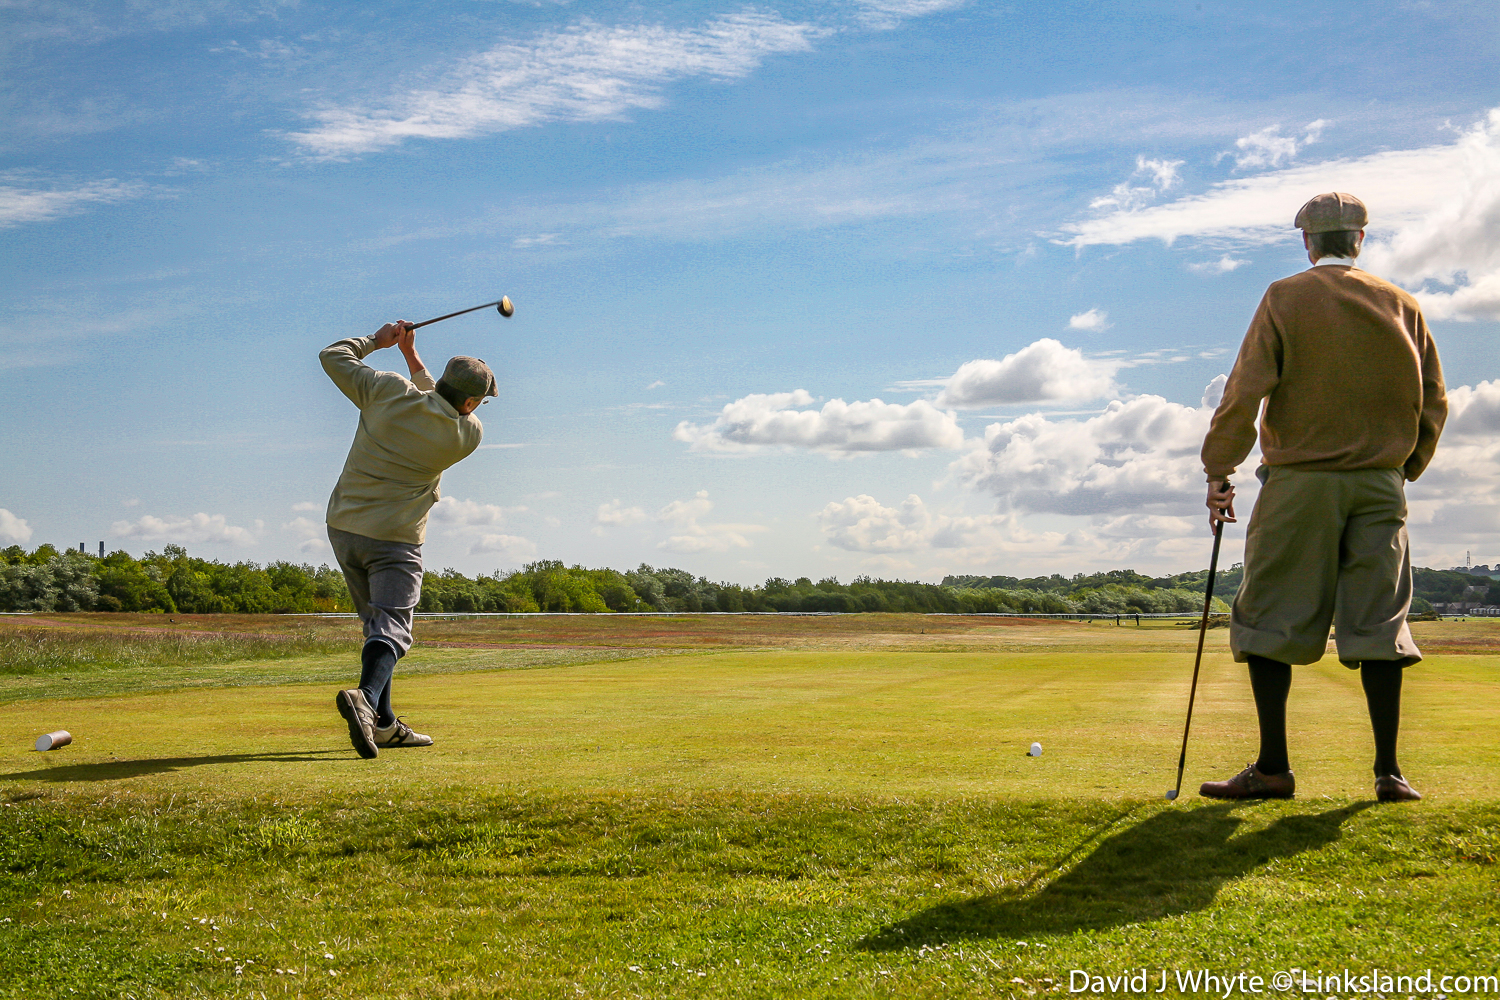 Hickory Golf at Musselburgh Old Links, the oldest playing golf course on the planet. There is documented evidence that the game was played here in 1672 and it is claimed that Mary, Queen of Scots, played at nearby Seton Palace in 1567